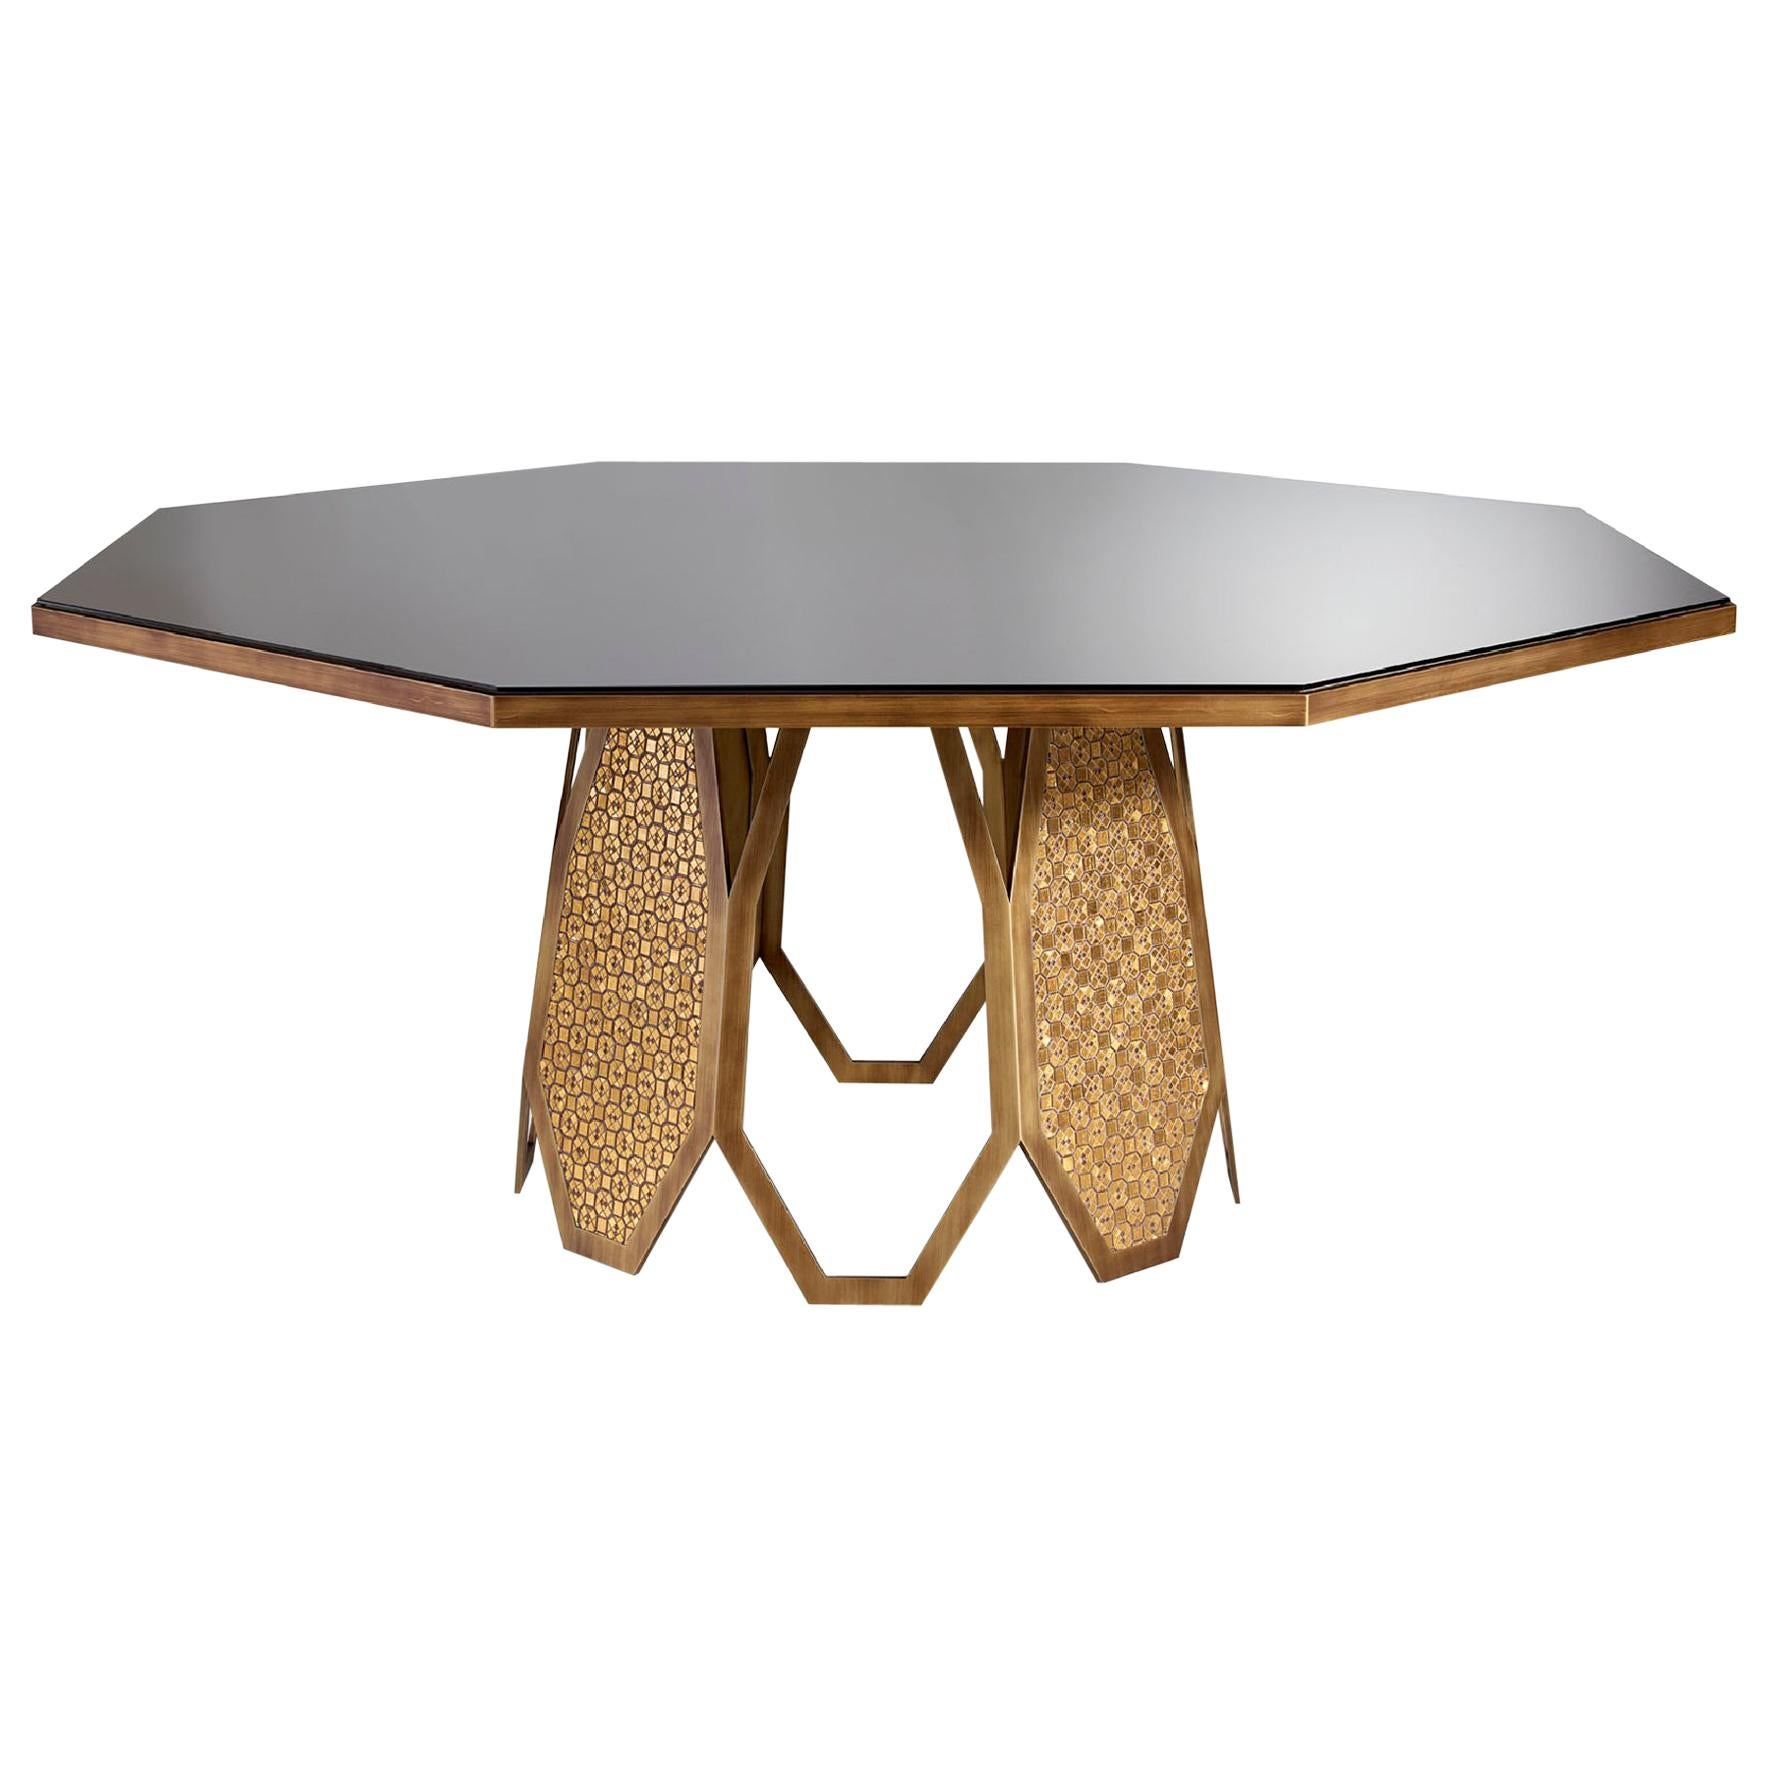 Fantastic Table Base in Stainless Steel Antique Bronze and Silver Finish Mosaic